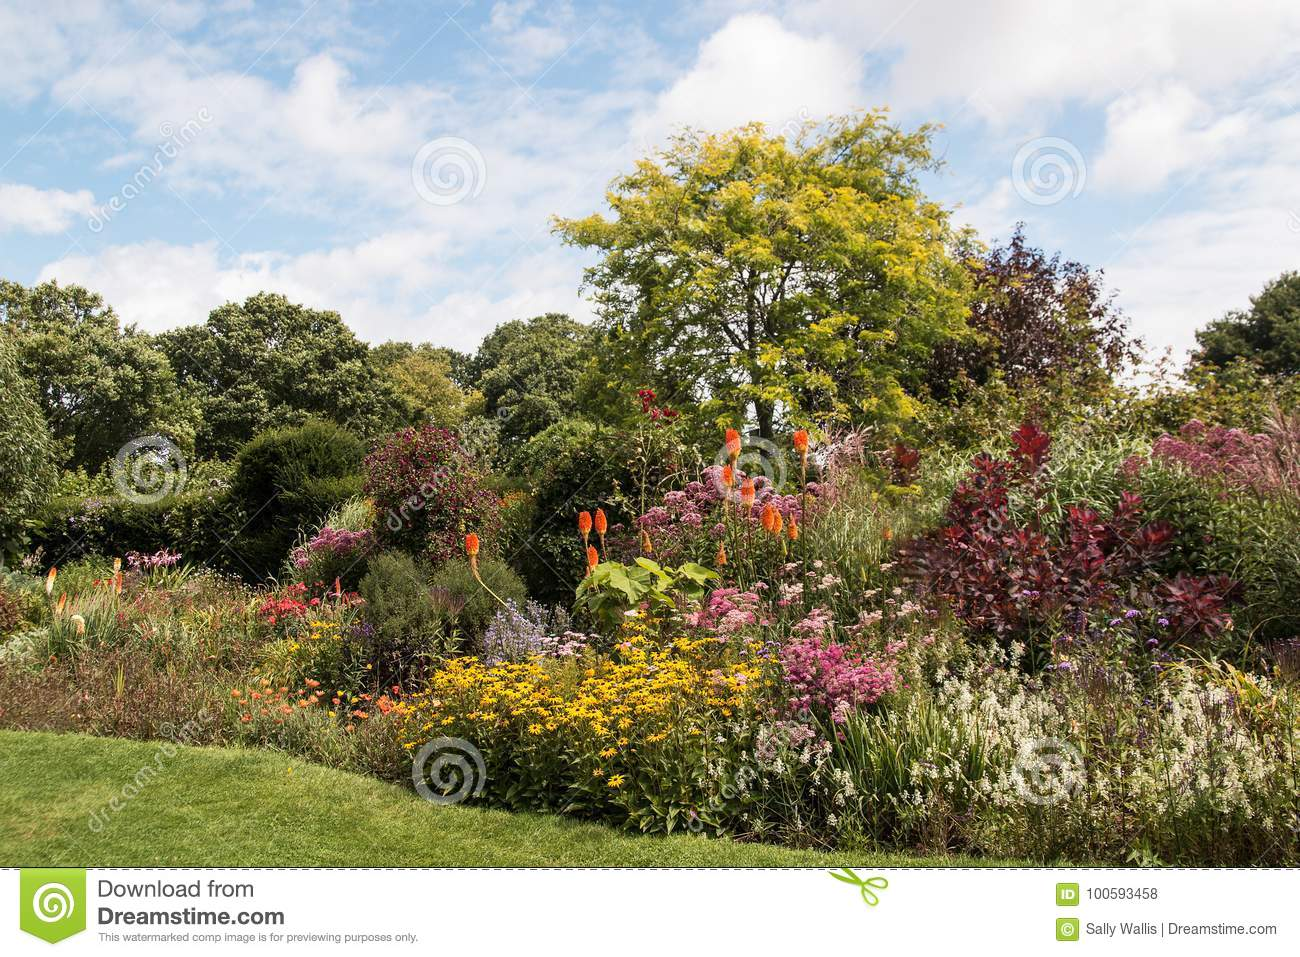 Englsi Country Garden stock photo. Image of border, clouds - 100593458